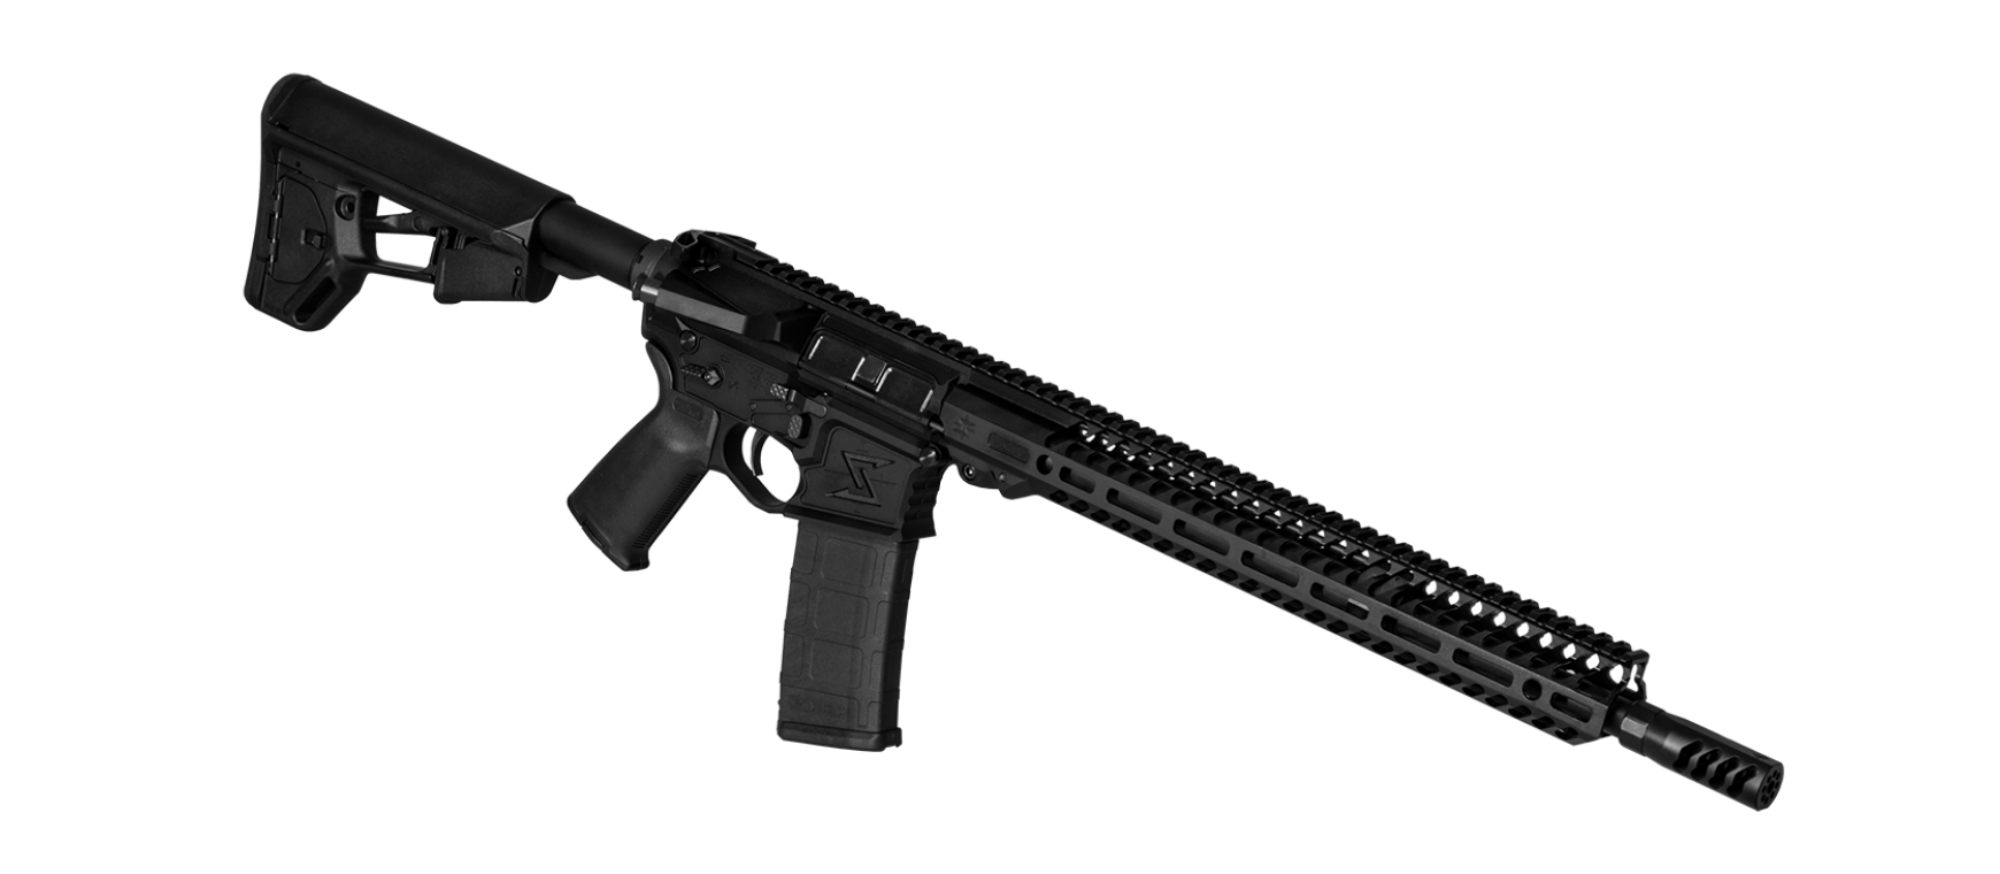 The NX3G sporting rifle from Seekins Precision